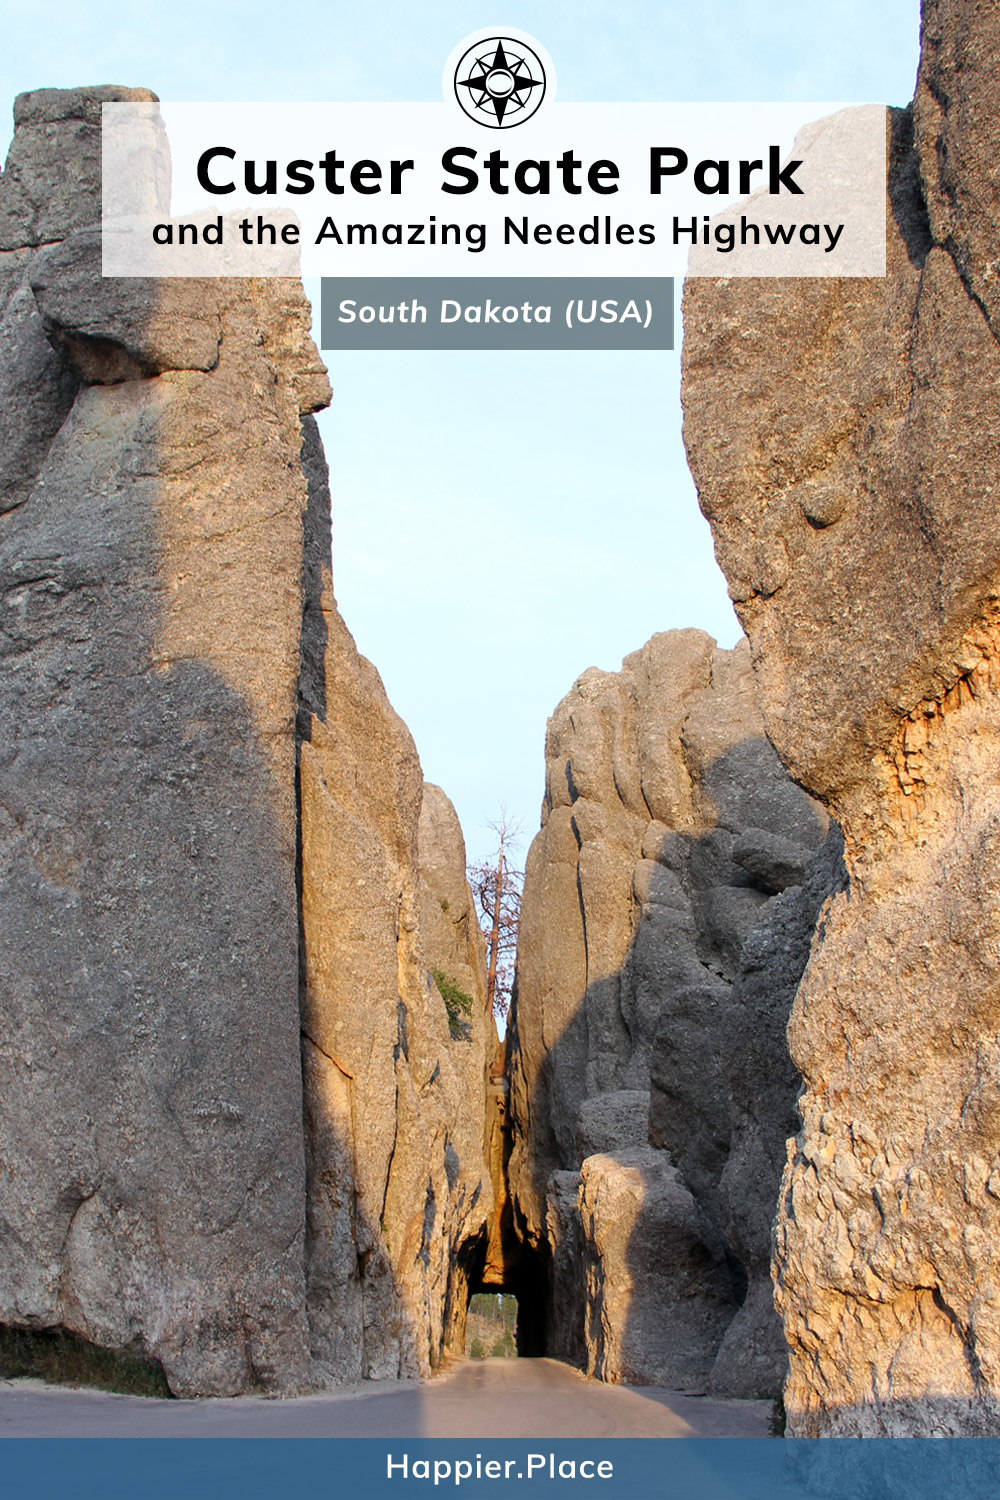 Needles Eye Tunnel of the Amazing Needles Highway in Custer State Park, South Dakota, USA.